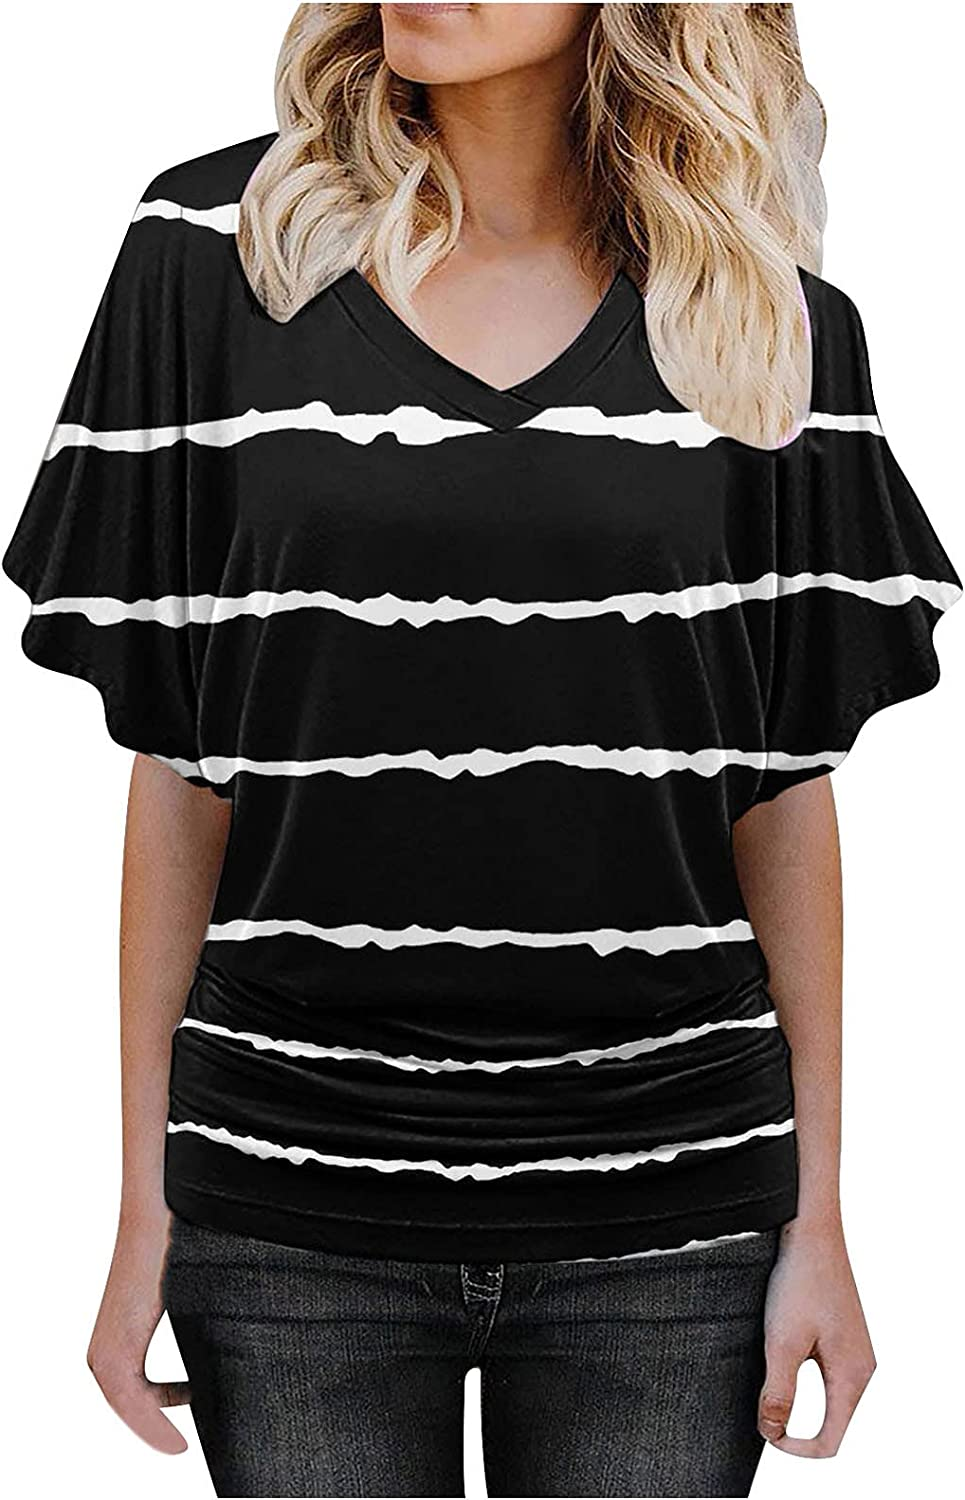 FAMOORE Women's Print Oakland Mall Short Sleeve Direct sale of manufacturer V Top Blouse T Shirts Neck